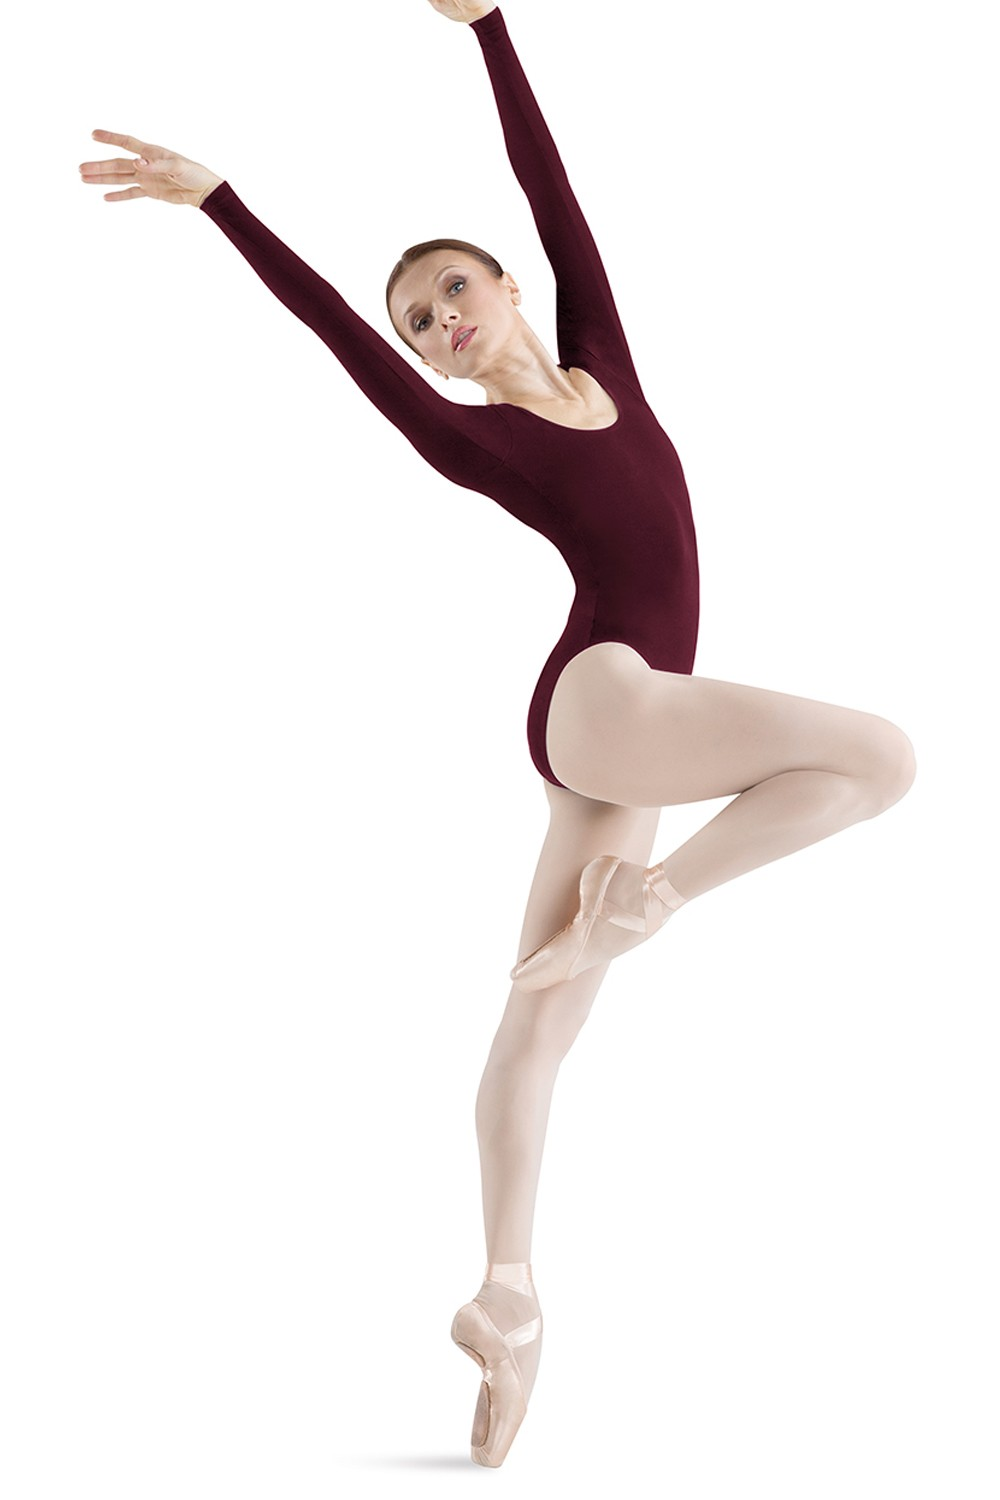 Premier Women's Dance Leotards